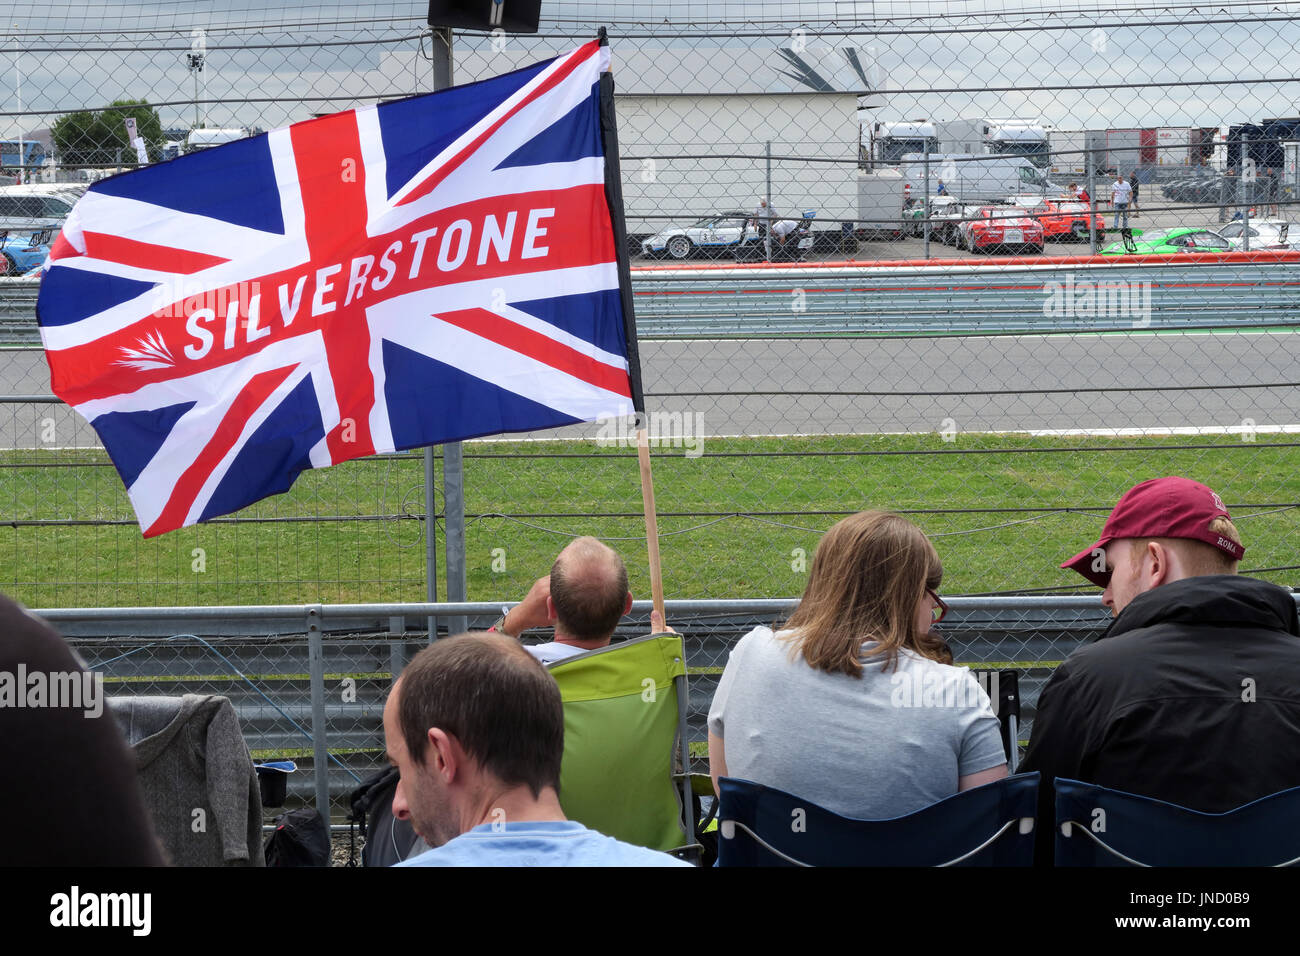 Flag,at,gotonysmith,july2017,fan,fans,seated,sitting,trackside